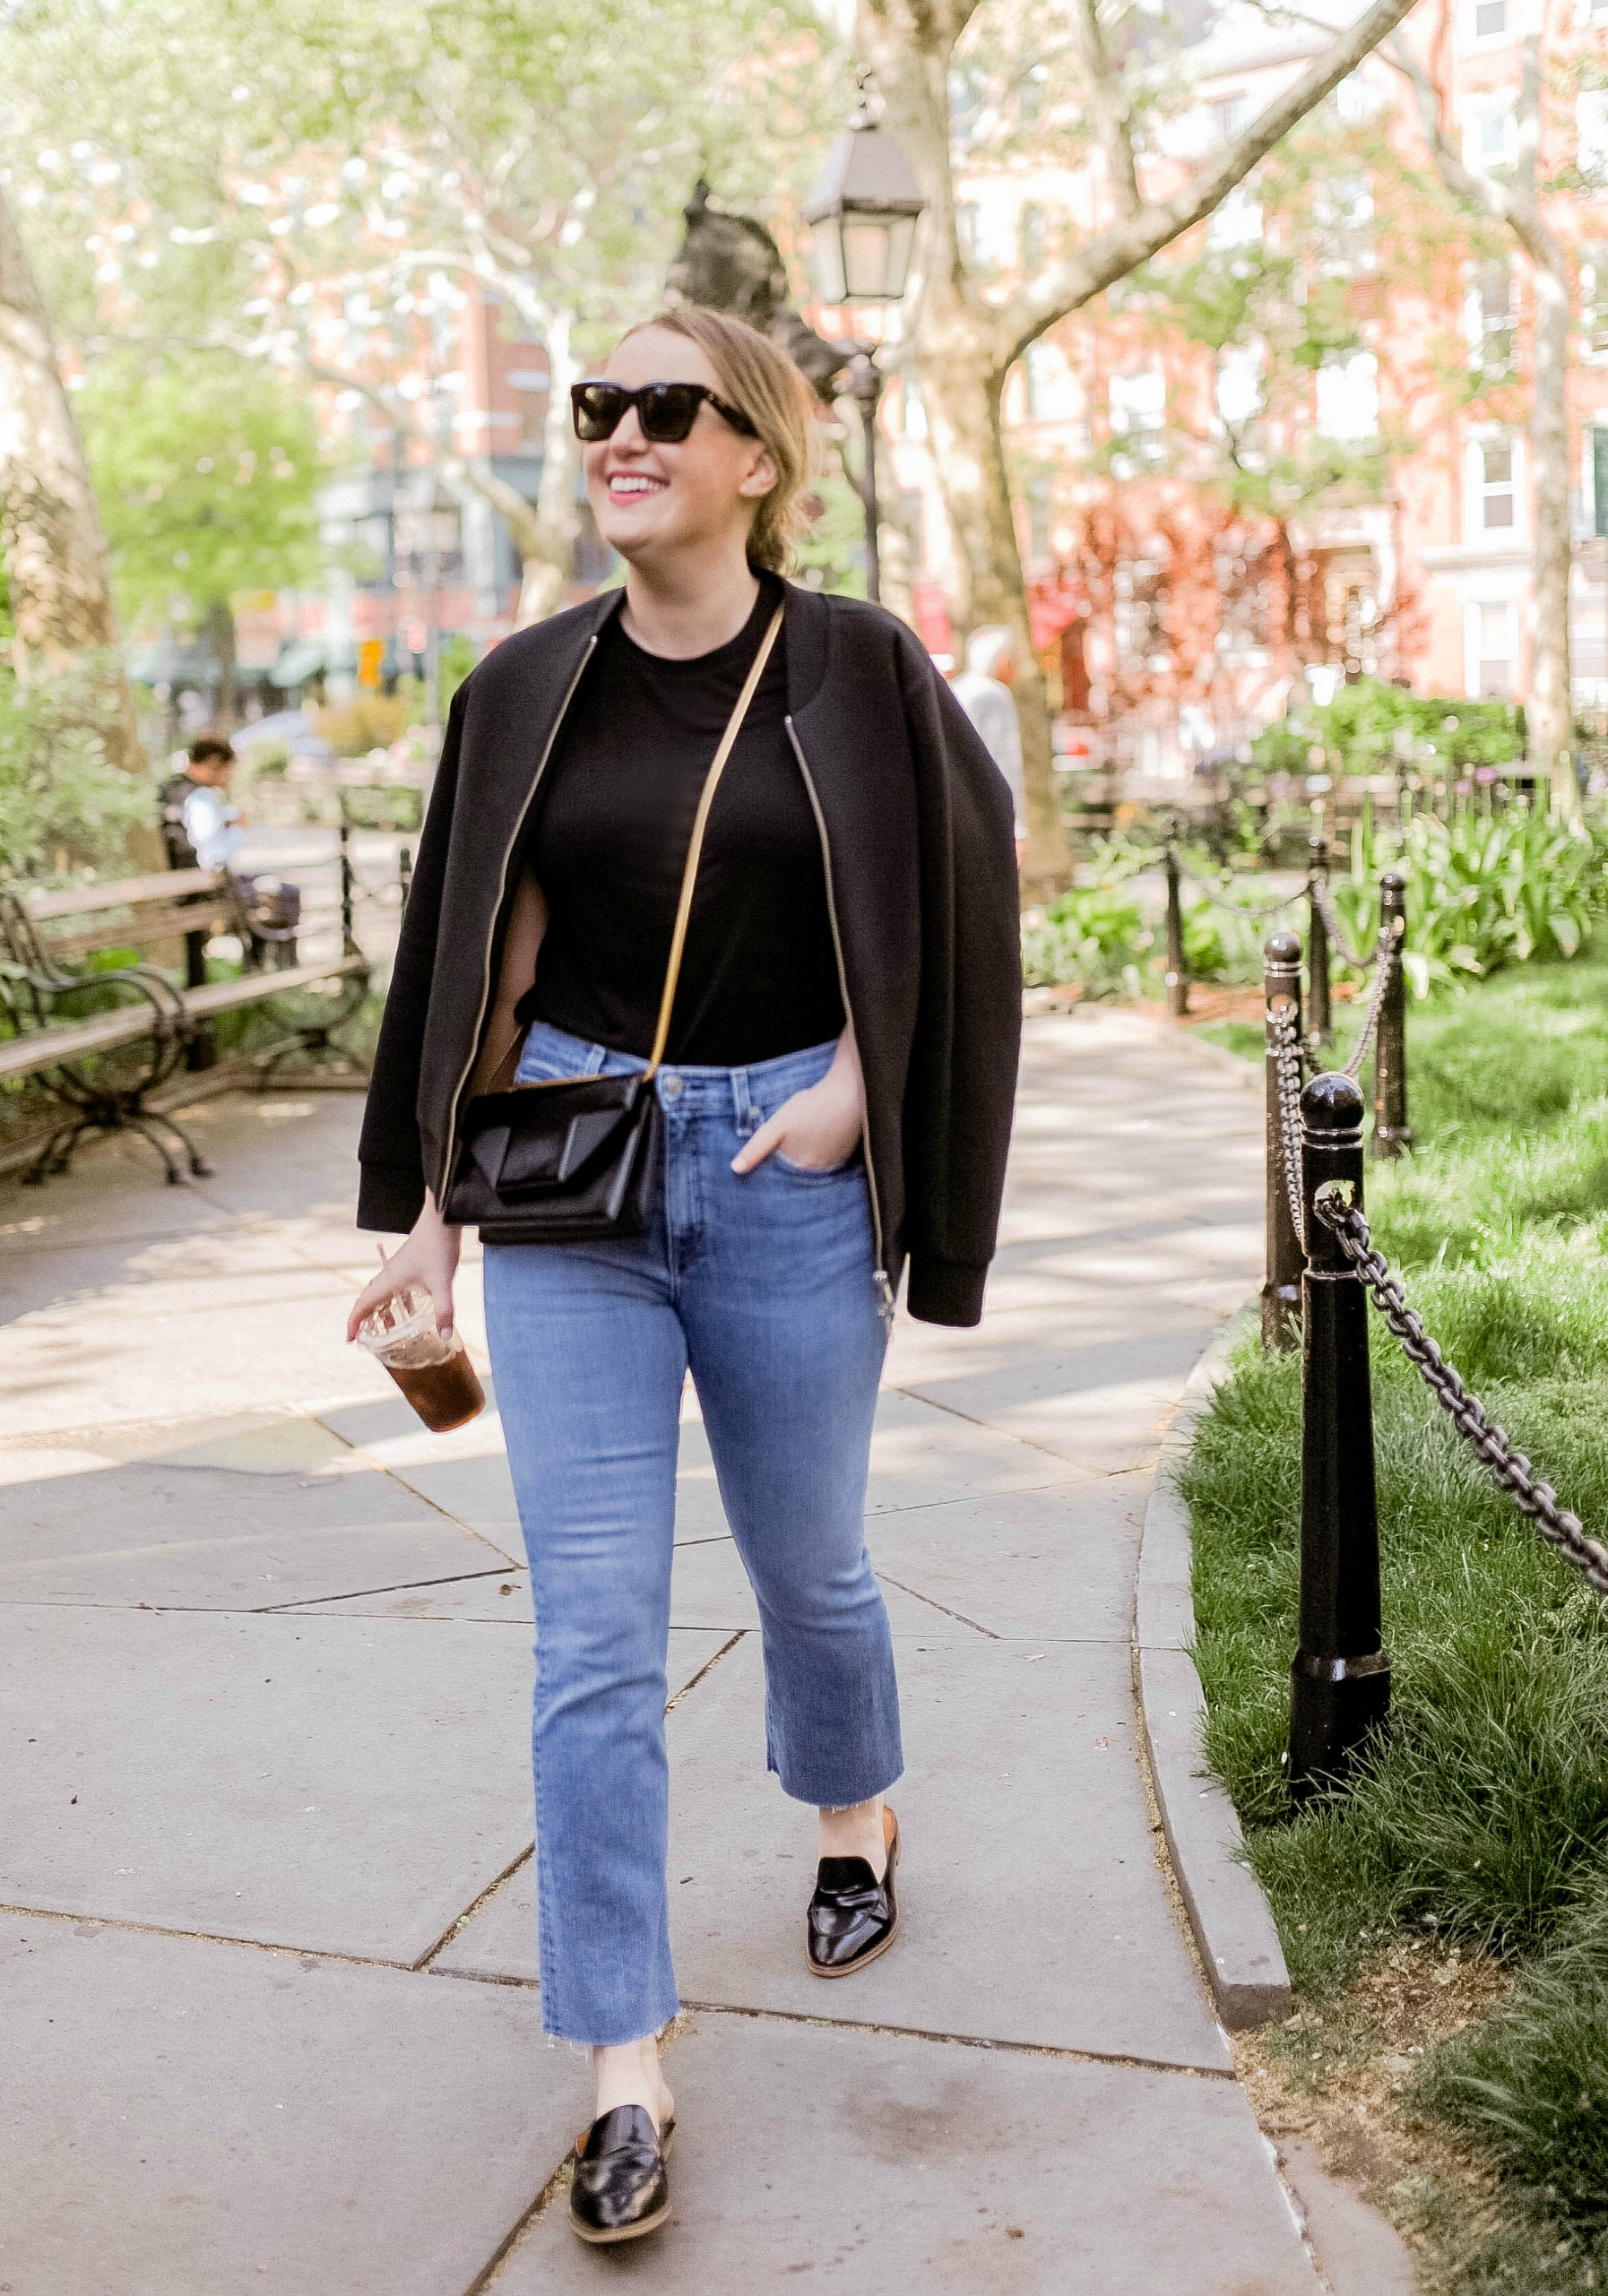 Madewell Bodysuit with Rag & Bone high rise jeans on Meghan Donovan of wit & whimsy